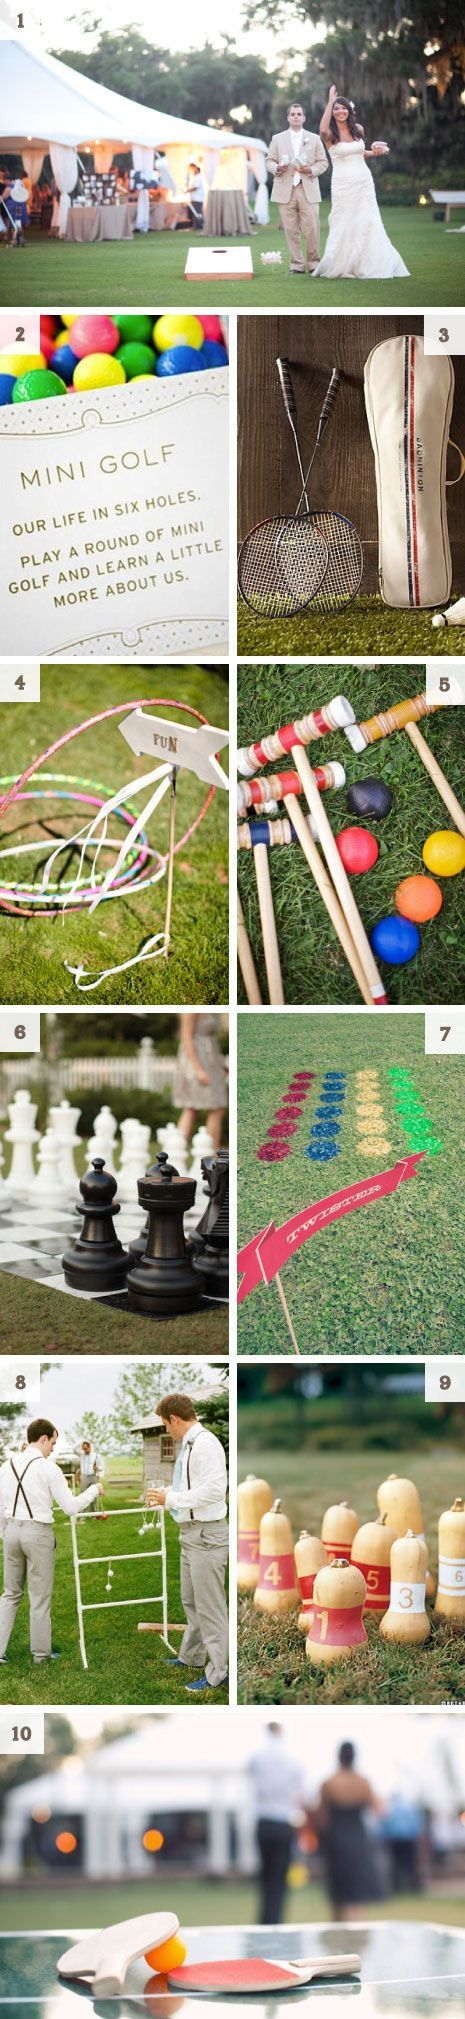 wedding lawn games. Love these. This avoids people sitting getting bored or just standing around. I love this idea. I want people to have fun at my wedding.